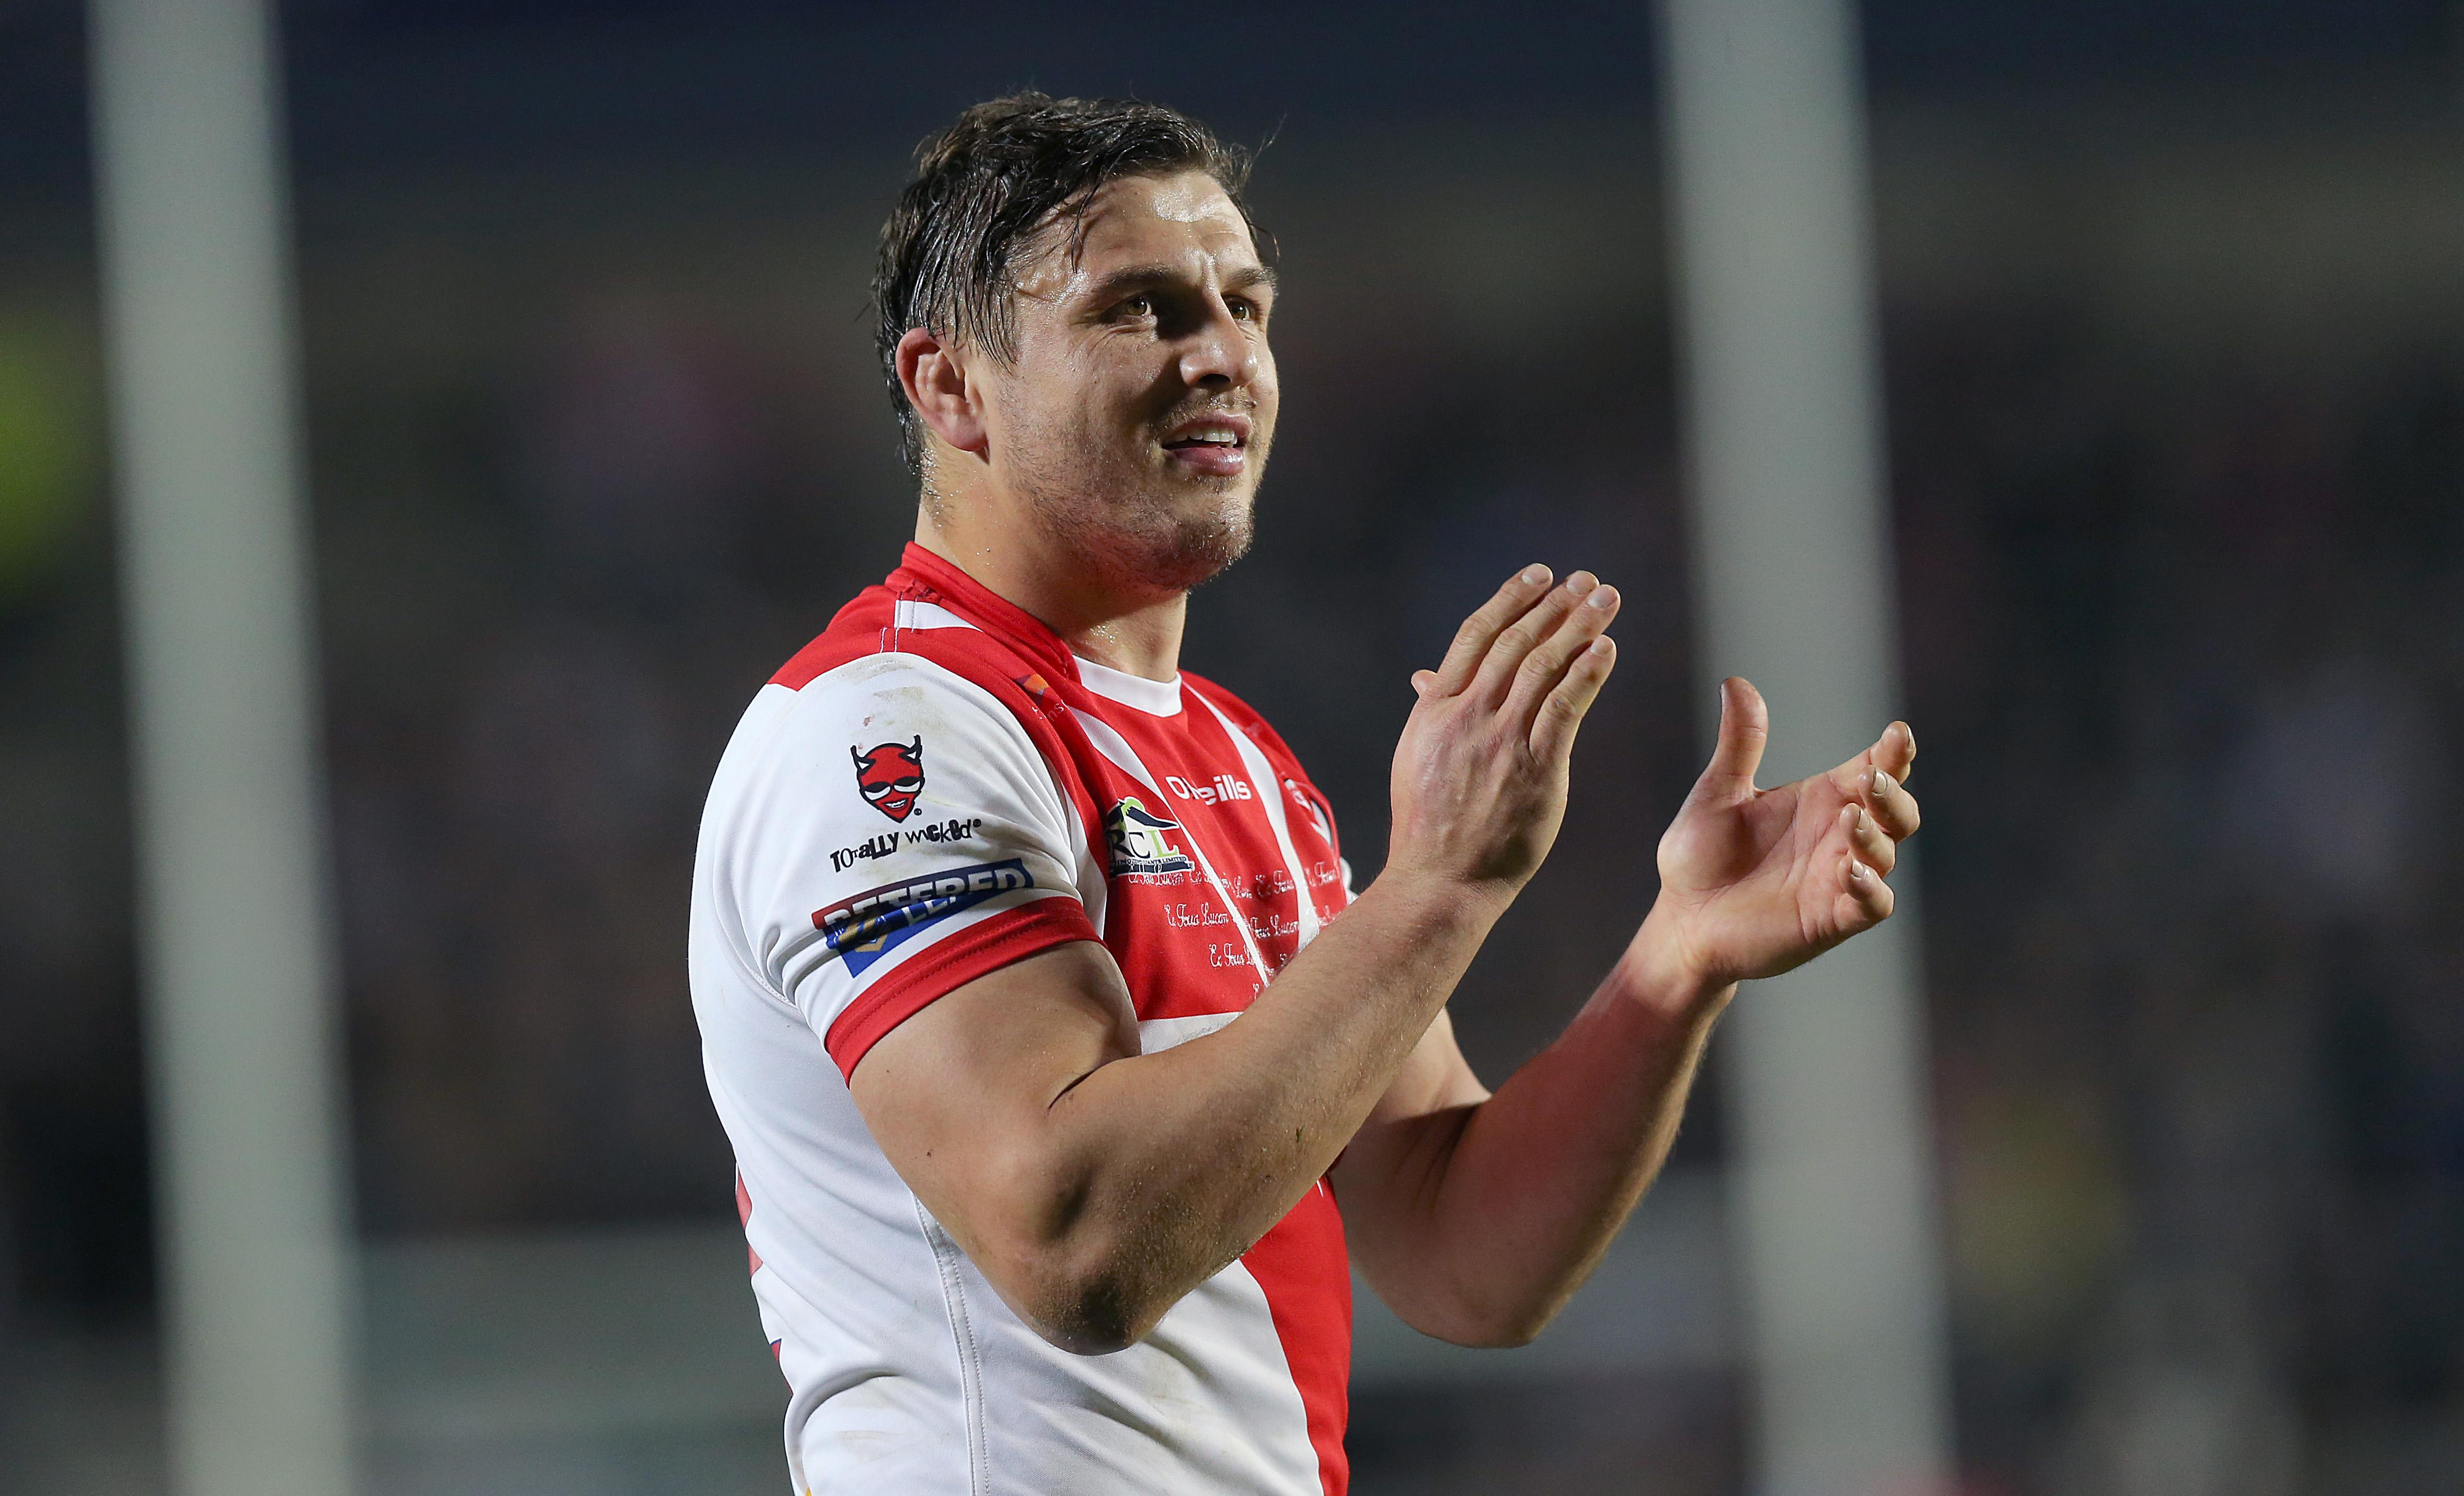 Jon Wilkin could play in his final St Helens v Wigan derby after 16 years